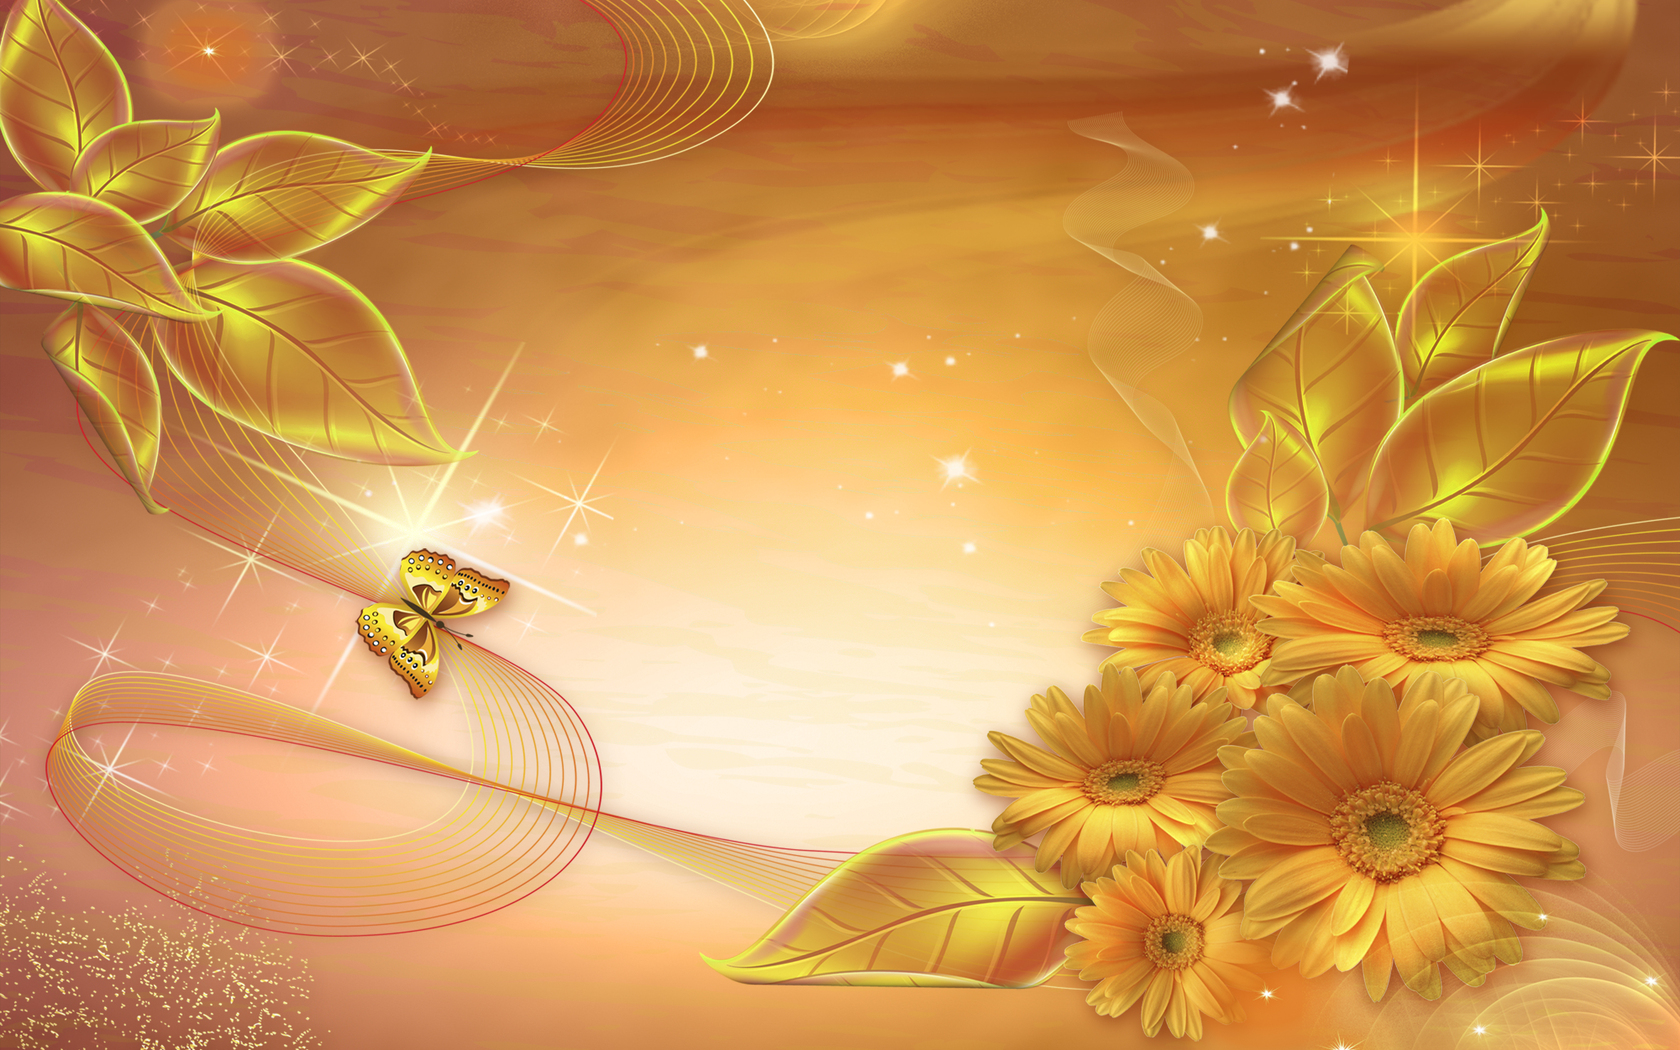 Gold Background wallpaper Gold Background hd wallpaper background 1680x1050